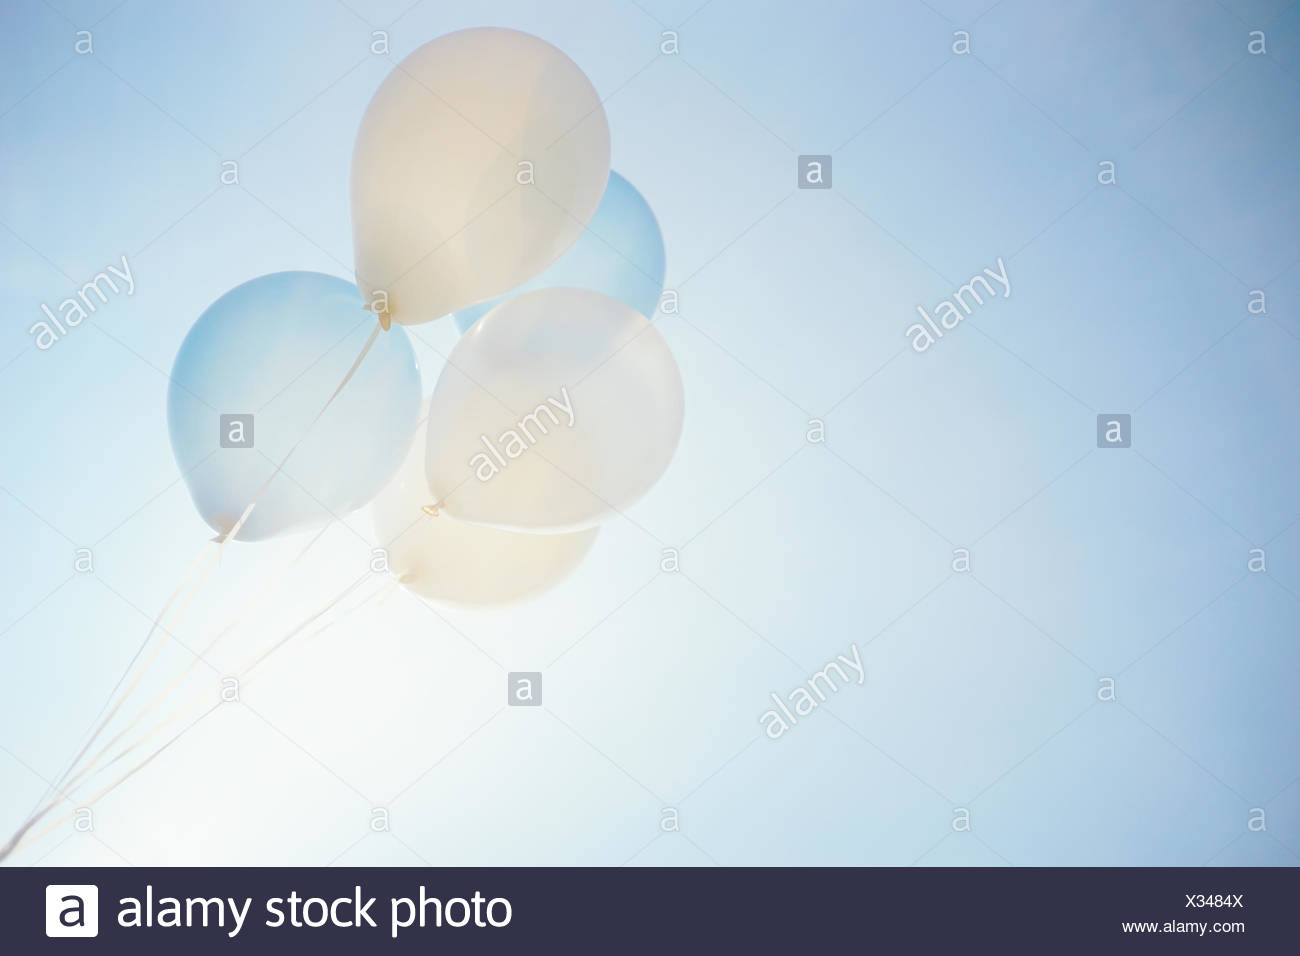 Low Angle View Of Balloons Against Sky Photo Stock